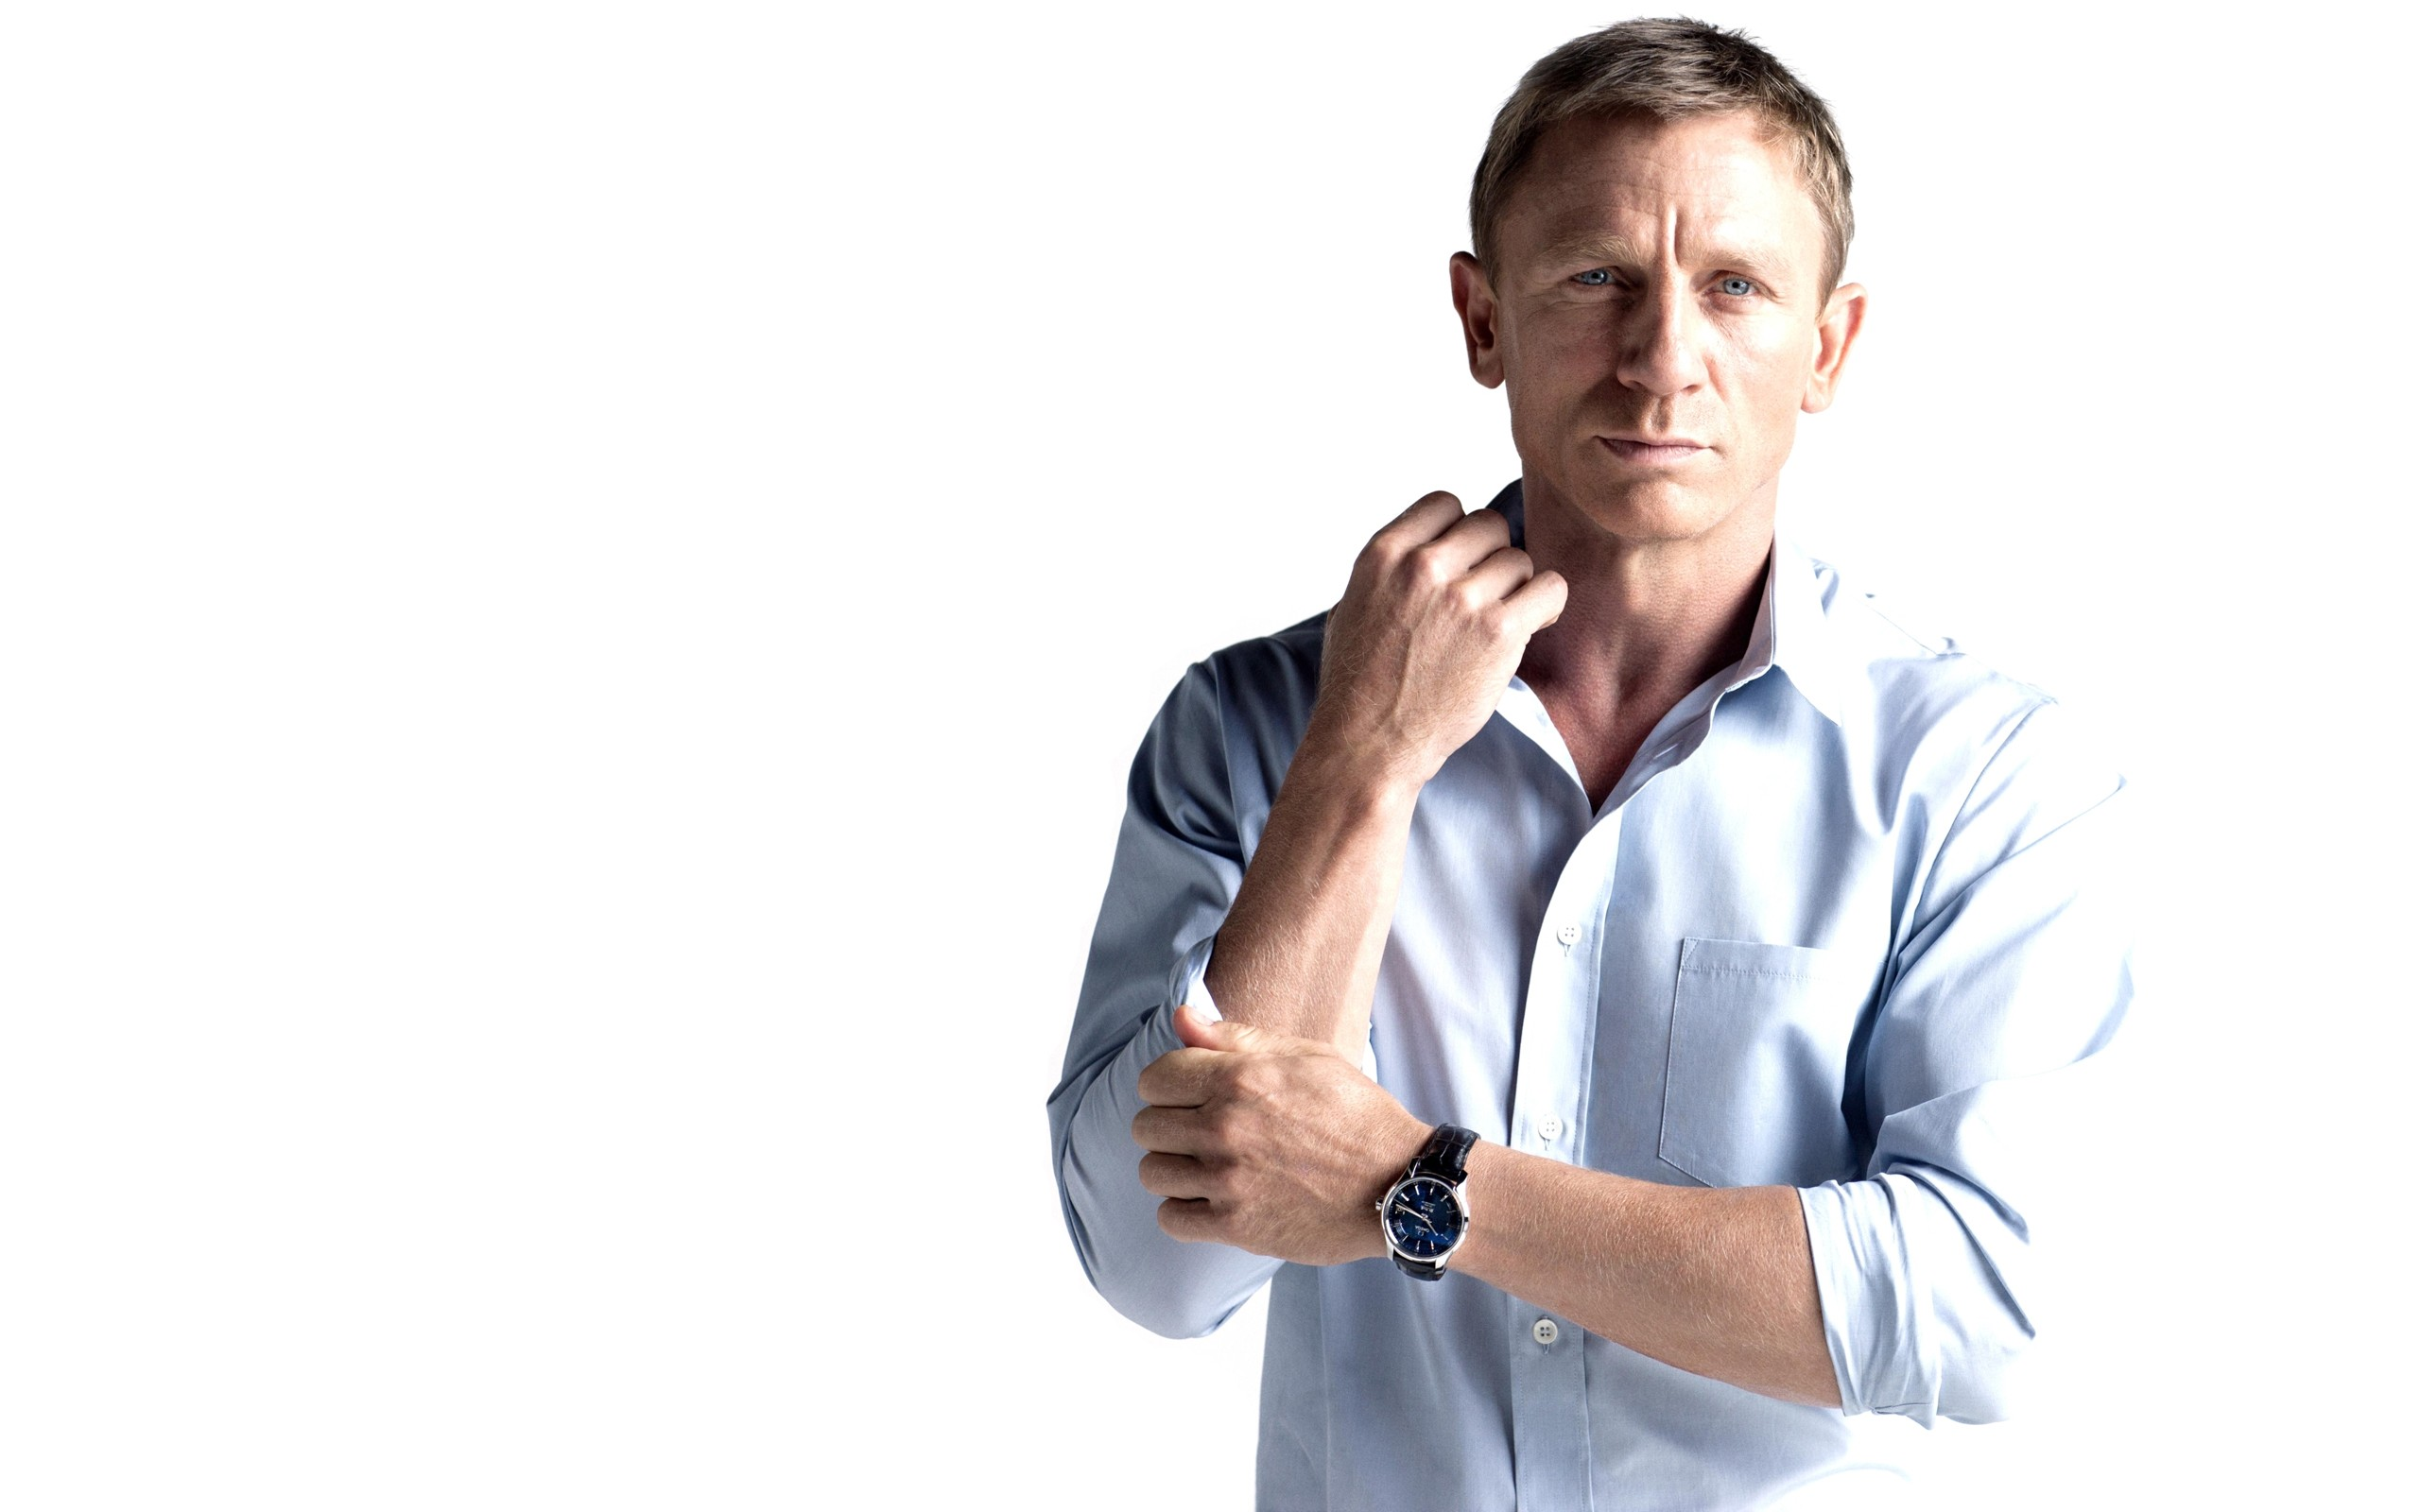 Download Wallpaper men james bond people actors daniel craig watches white background -3782-37